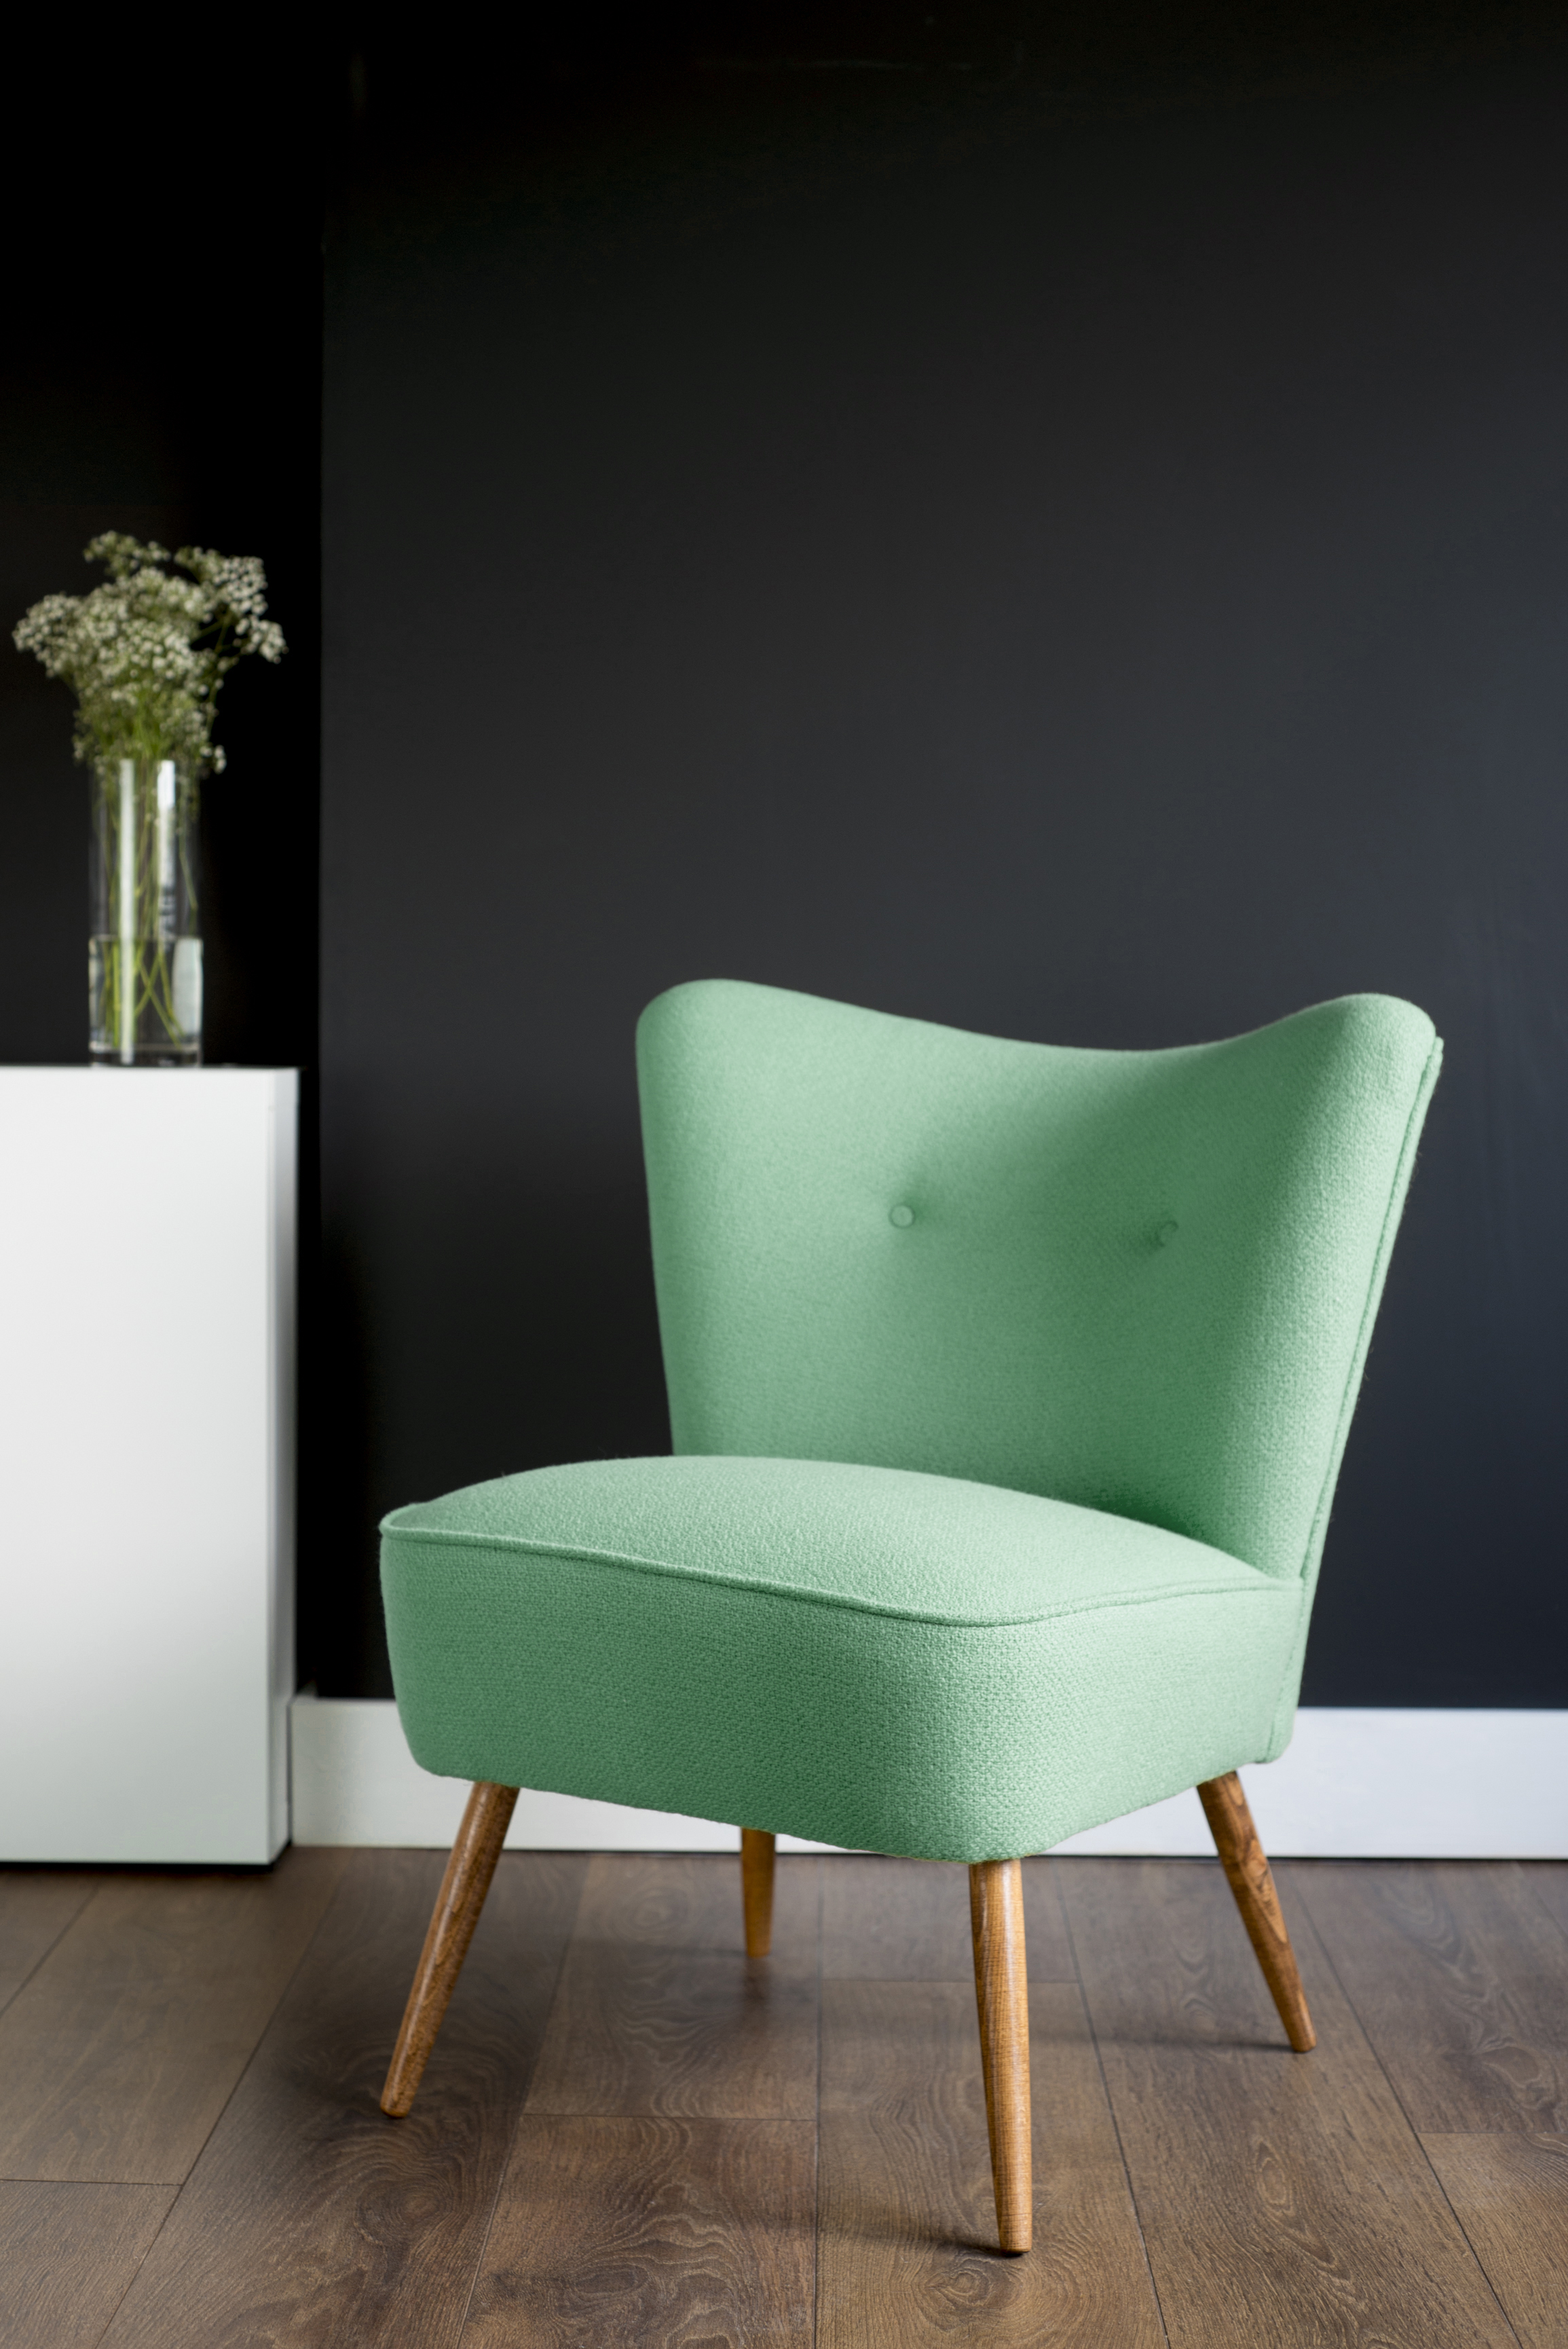 Attirant Mint Green Menthol Bute Wool Vintage Cocktail Chair ...